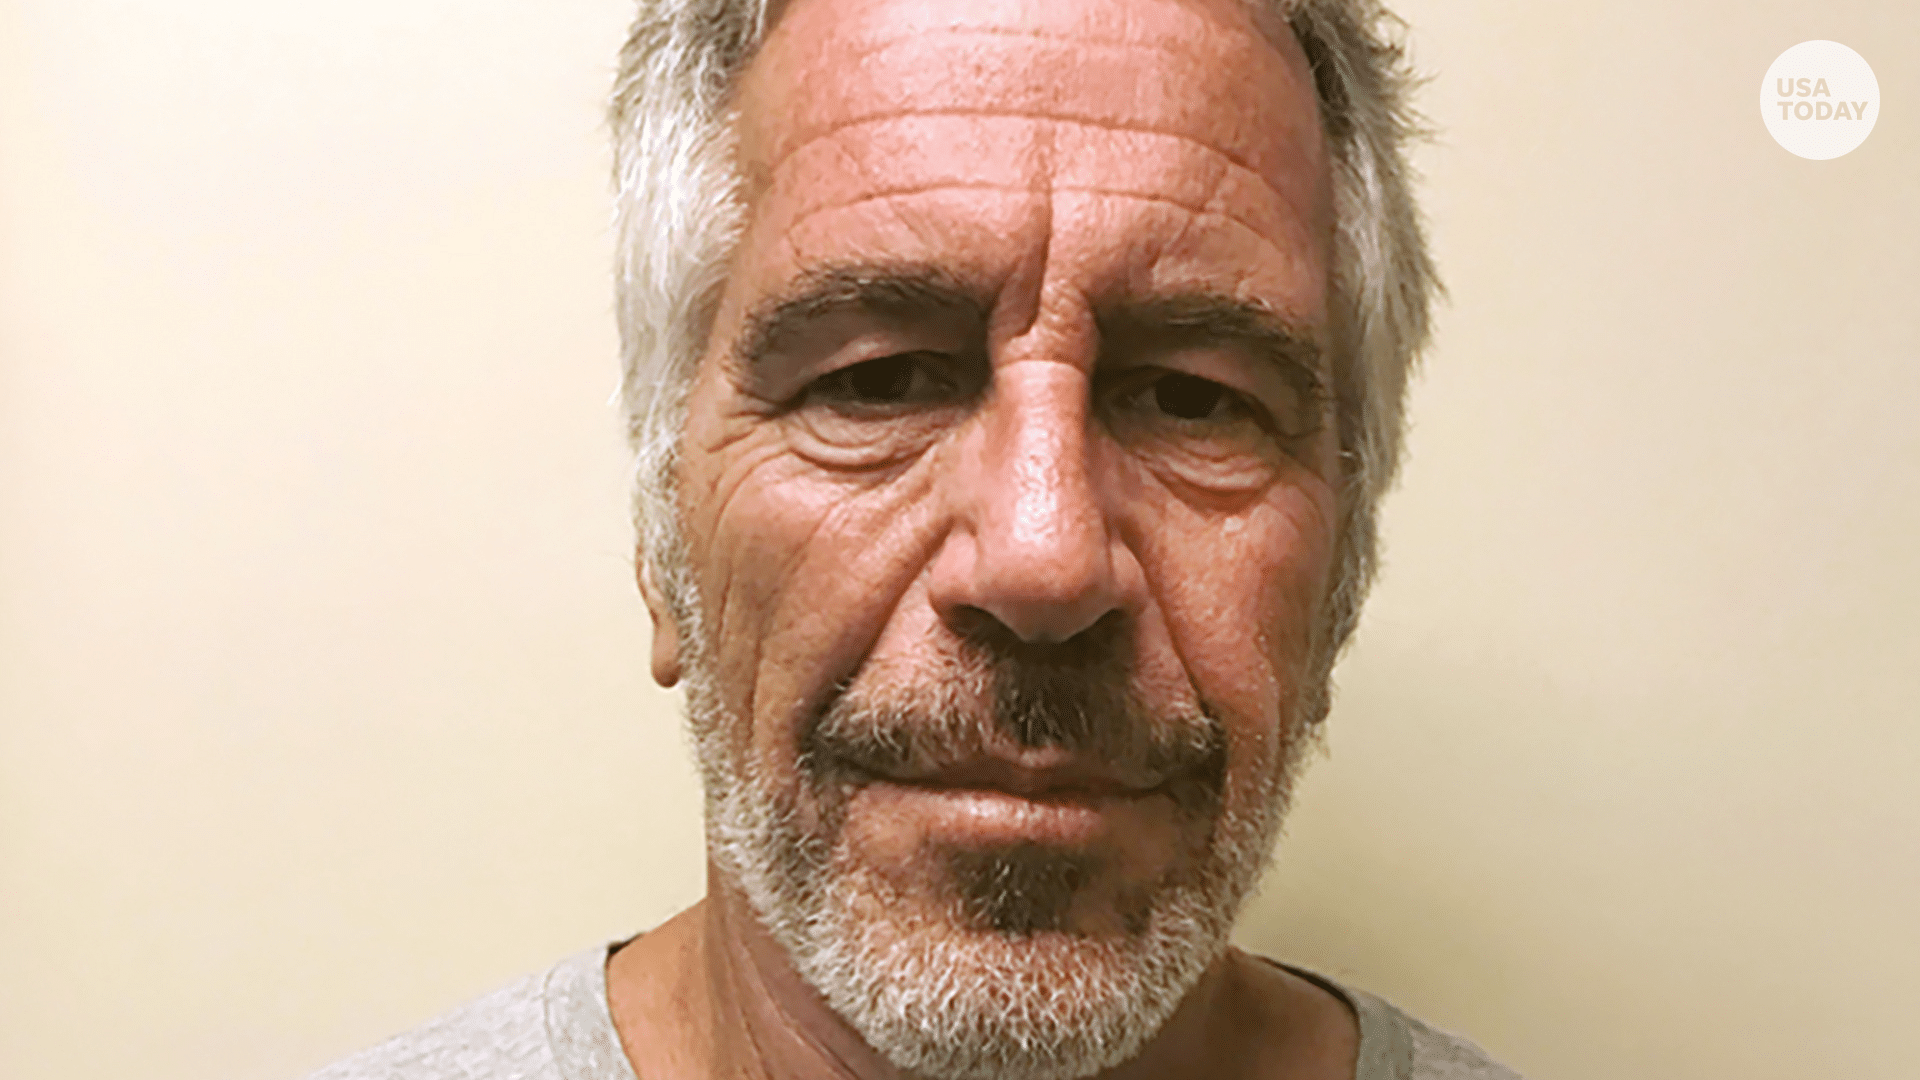 Epstein, Weinstein & Clinton: We've Reached Peak, 'Murican Moral Degeneracy - The Mike Church Show